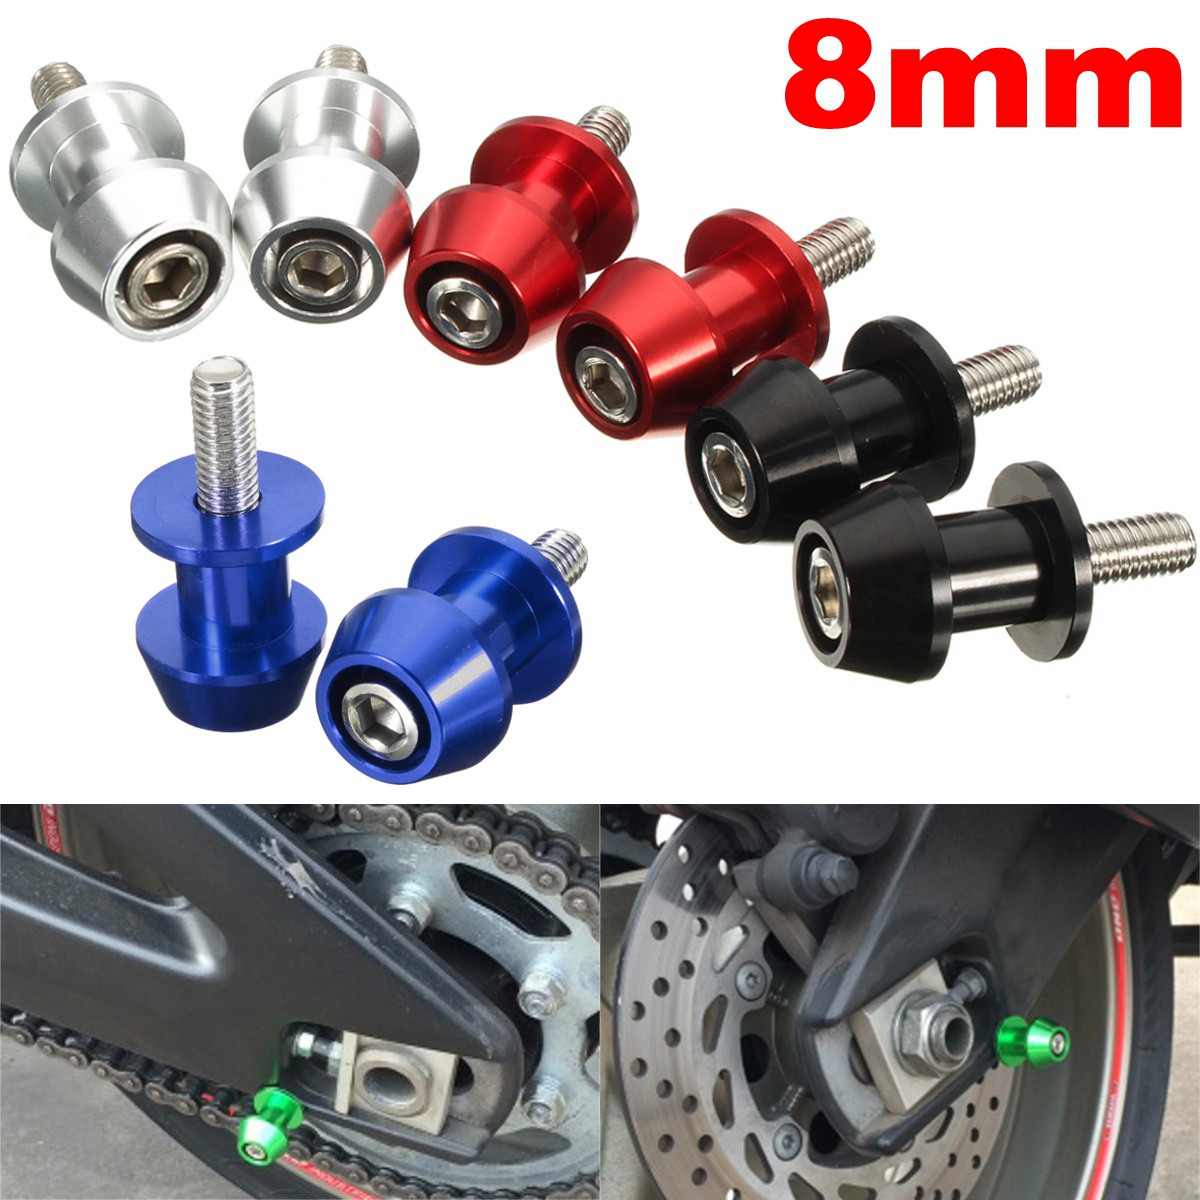 Pair Universal 8mm Motorcycle Swingarm Spools Sliders Swing Screw Stands For BMW/Honda/Kawasaki/Suzuki